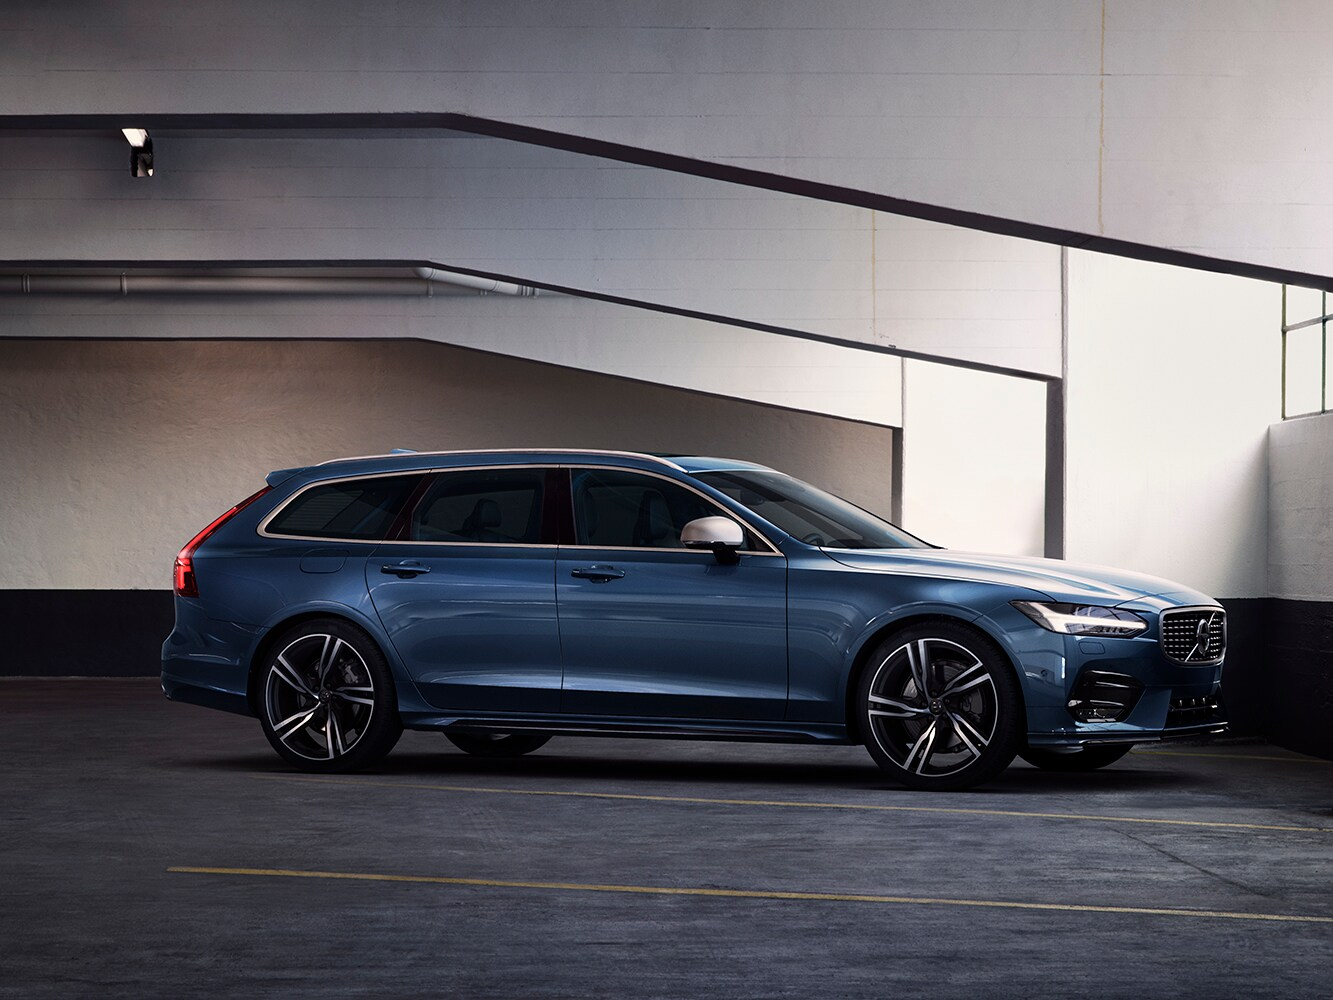 Side-front view of Volvo V90 R-Design in carpark showing of the stiffer, lowered Sport Chassis.